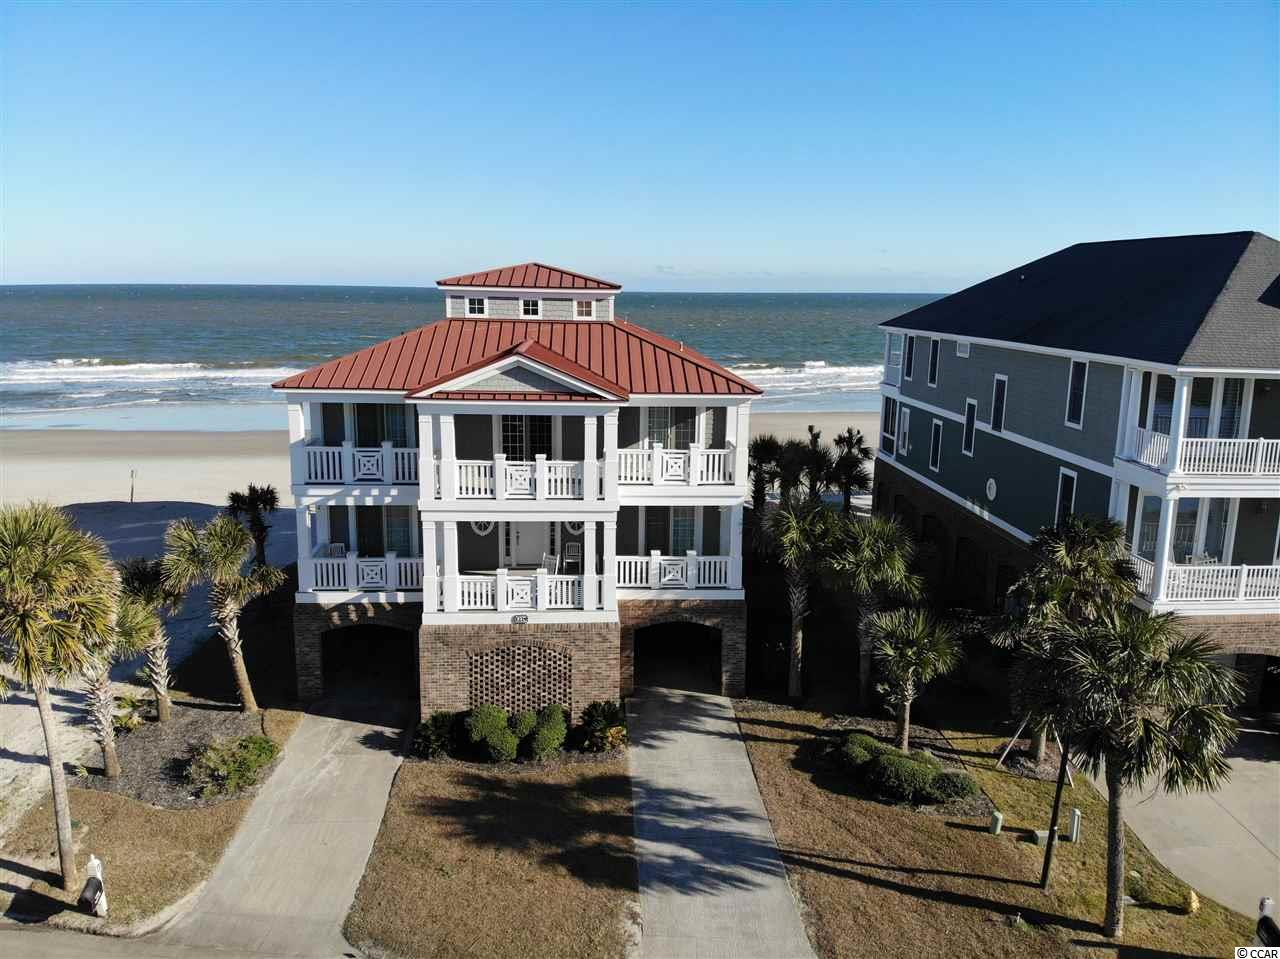 1229 Norris Dr., Pawleys Island, South Carolina